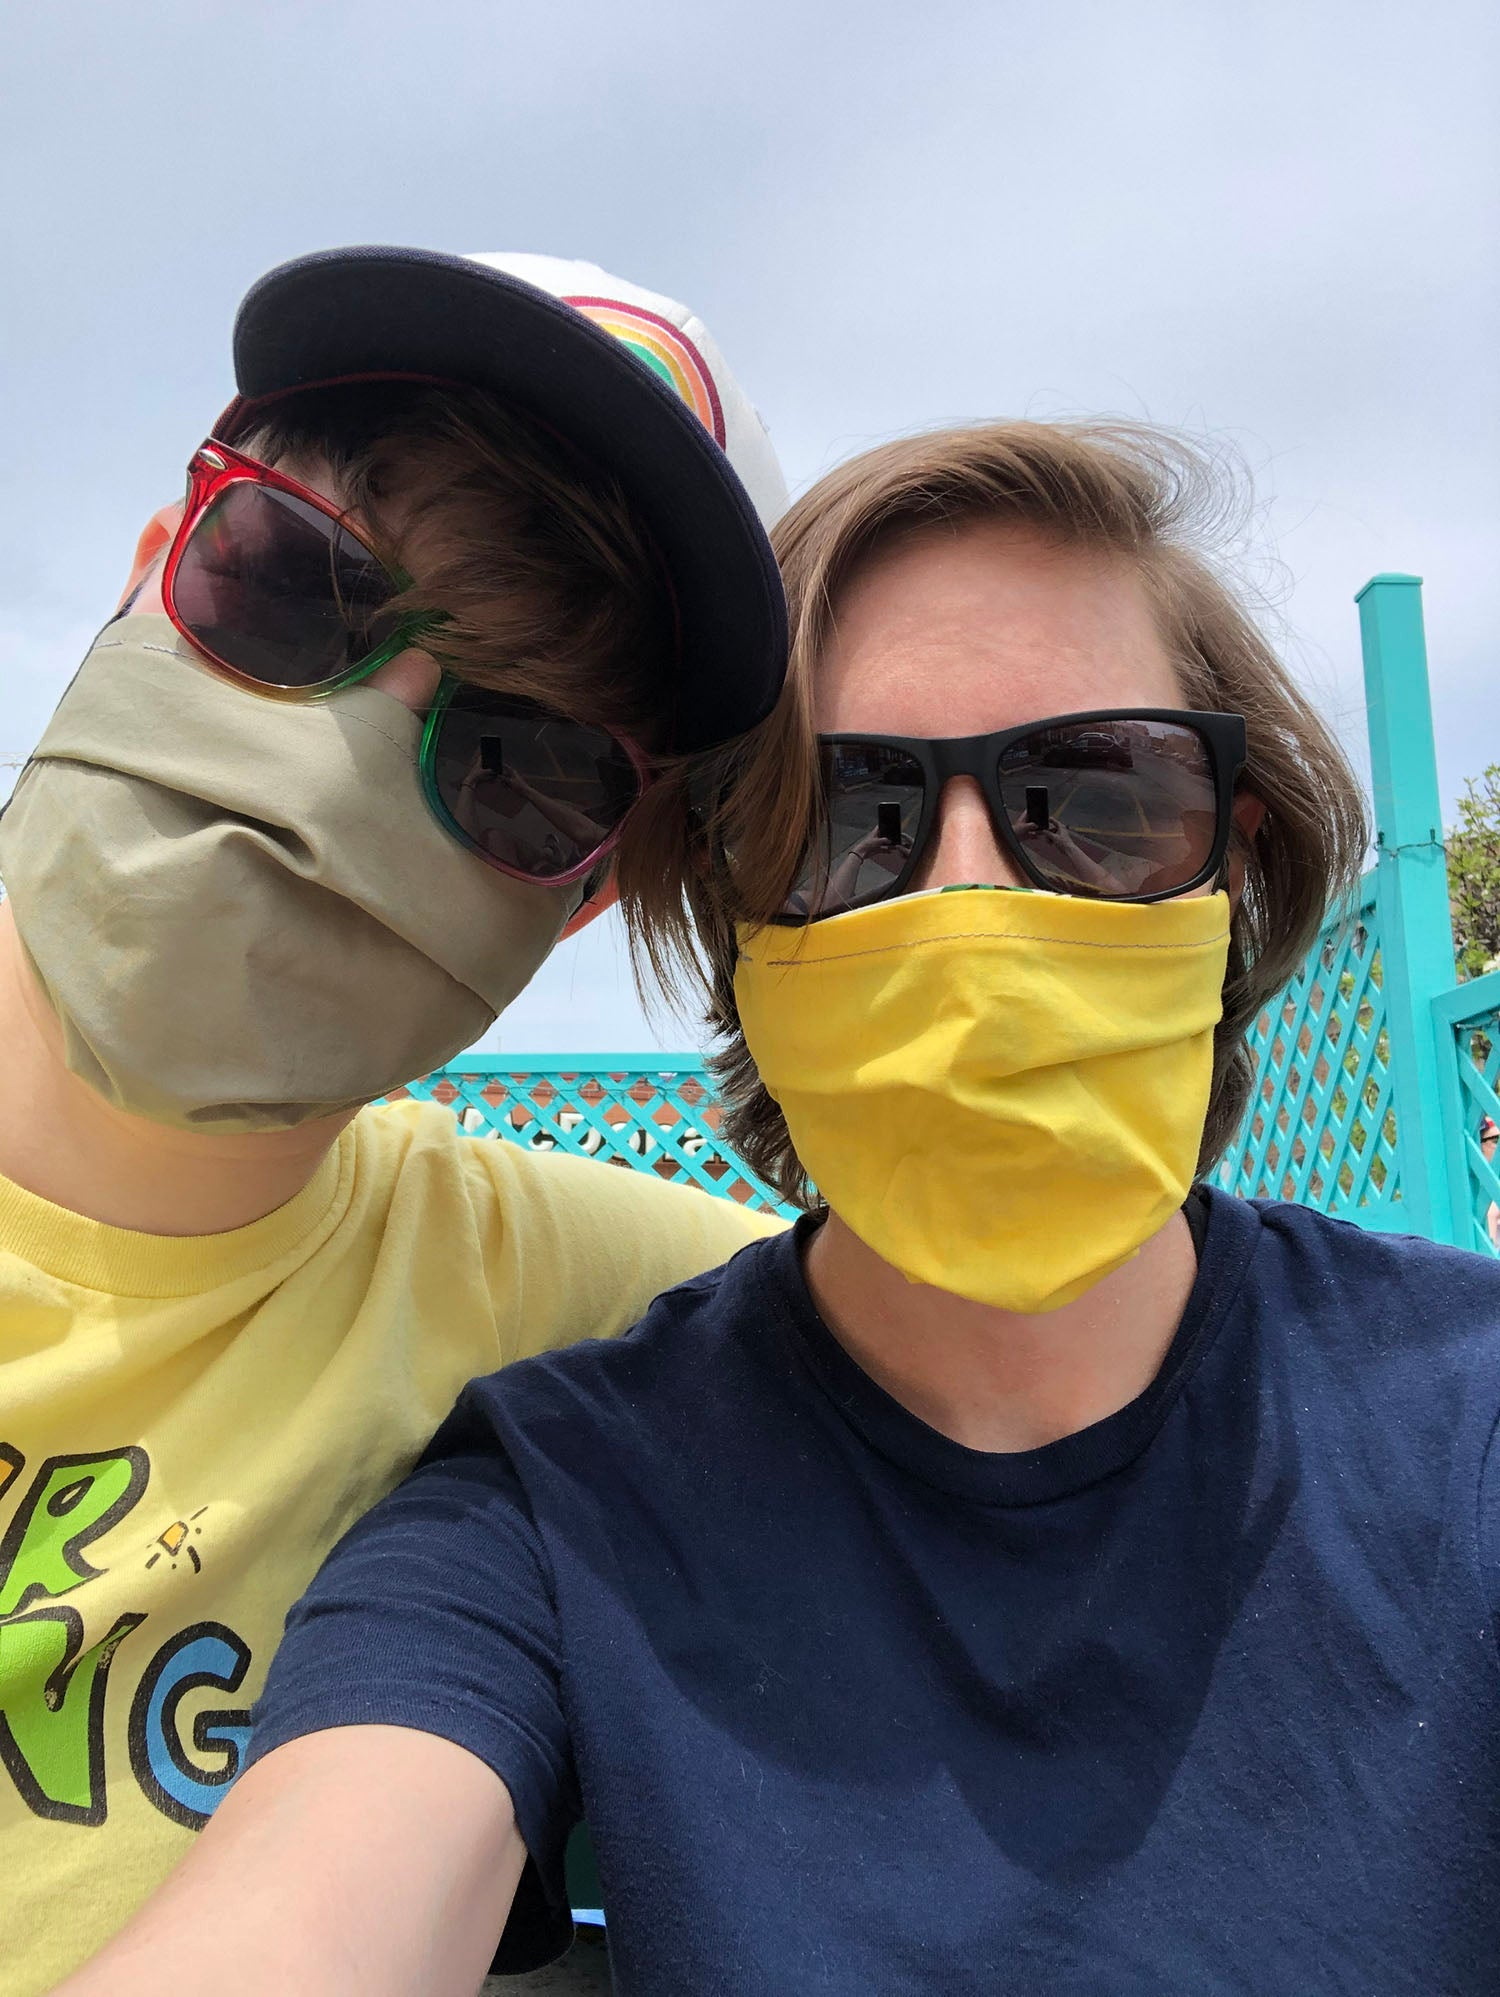 A couple sitting outside rest their heads together. One person wears a hat with a rainbow, rainbow sunglasses and a laurel green face covering; the other person wears black sunglasses and a yellow face covering